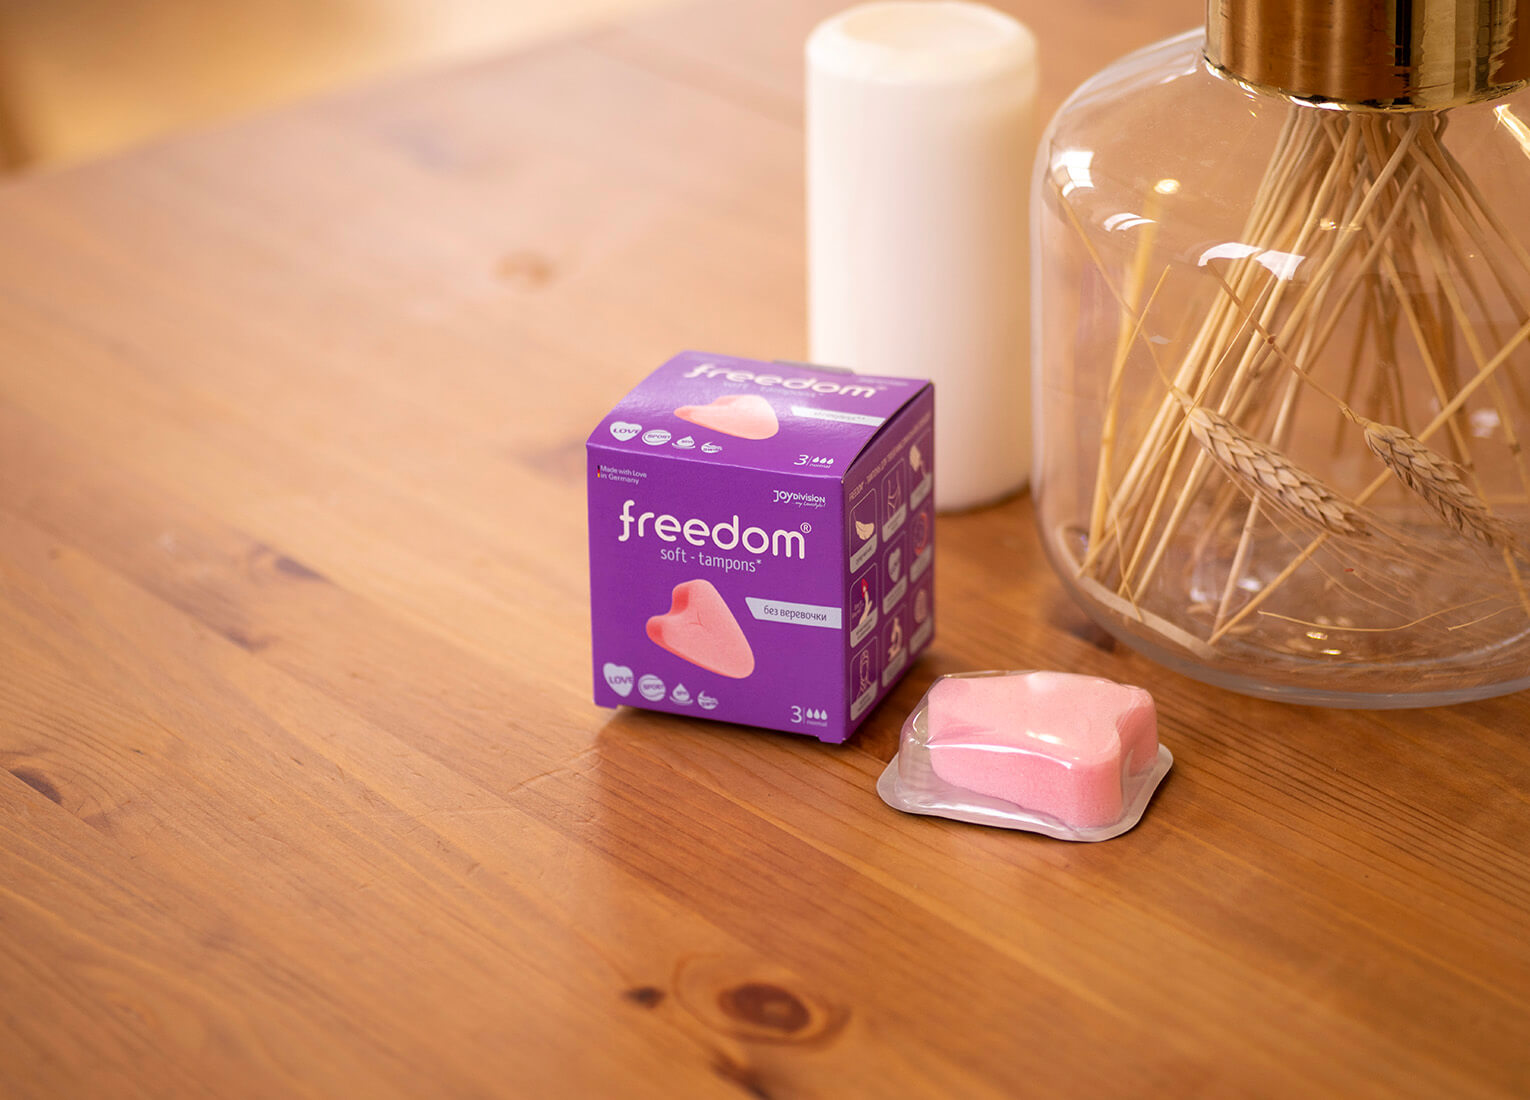 Freedom soft tampons от Joy Division